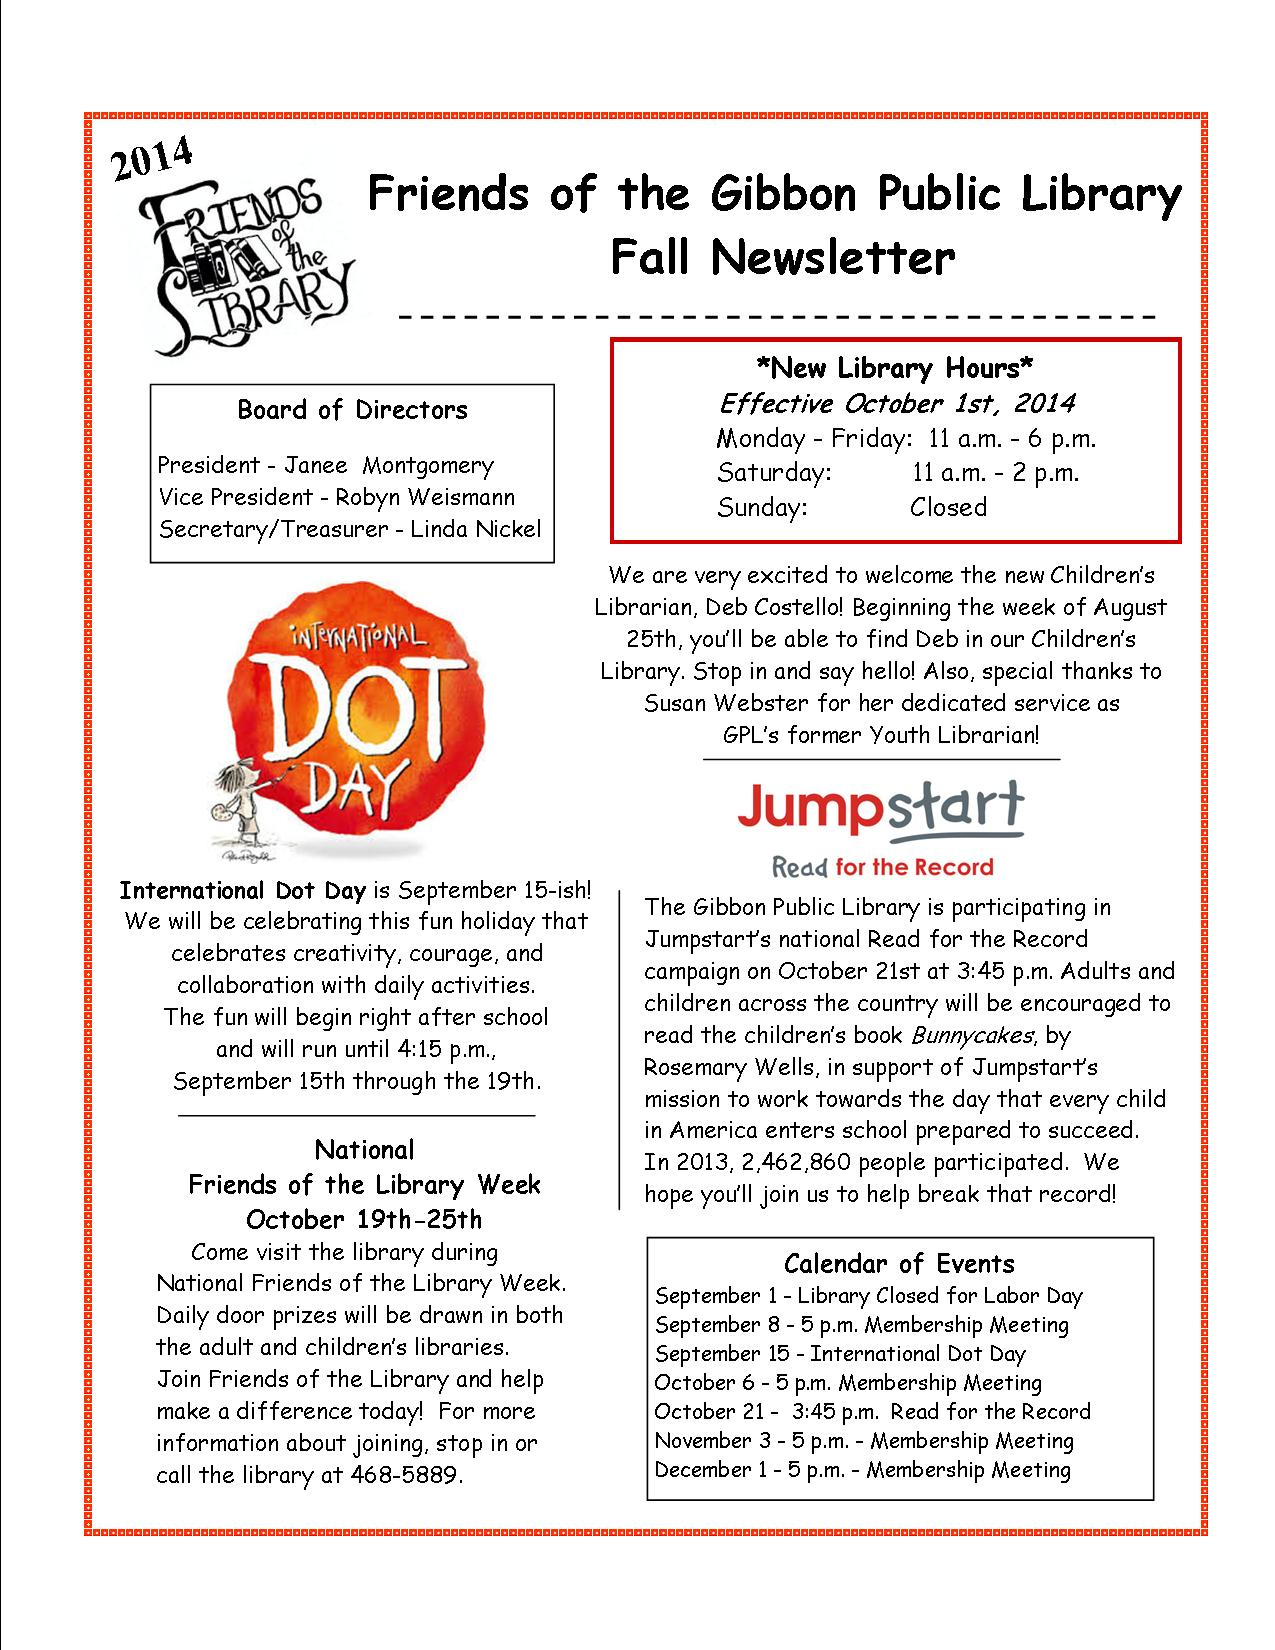 Friends of Library Newsletter - Fall 2014